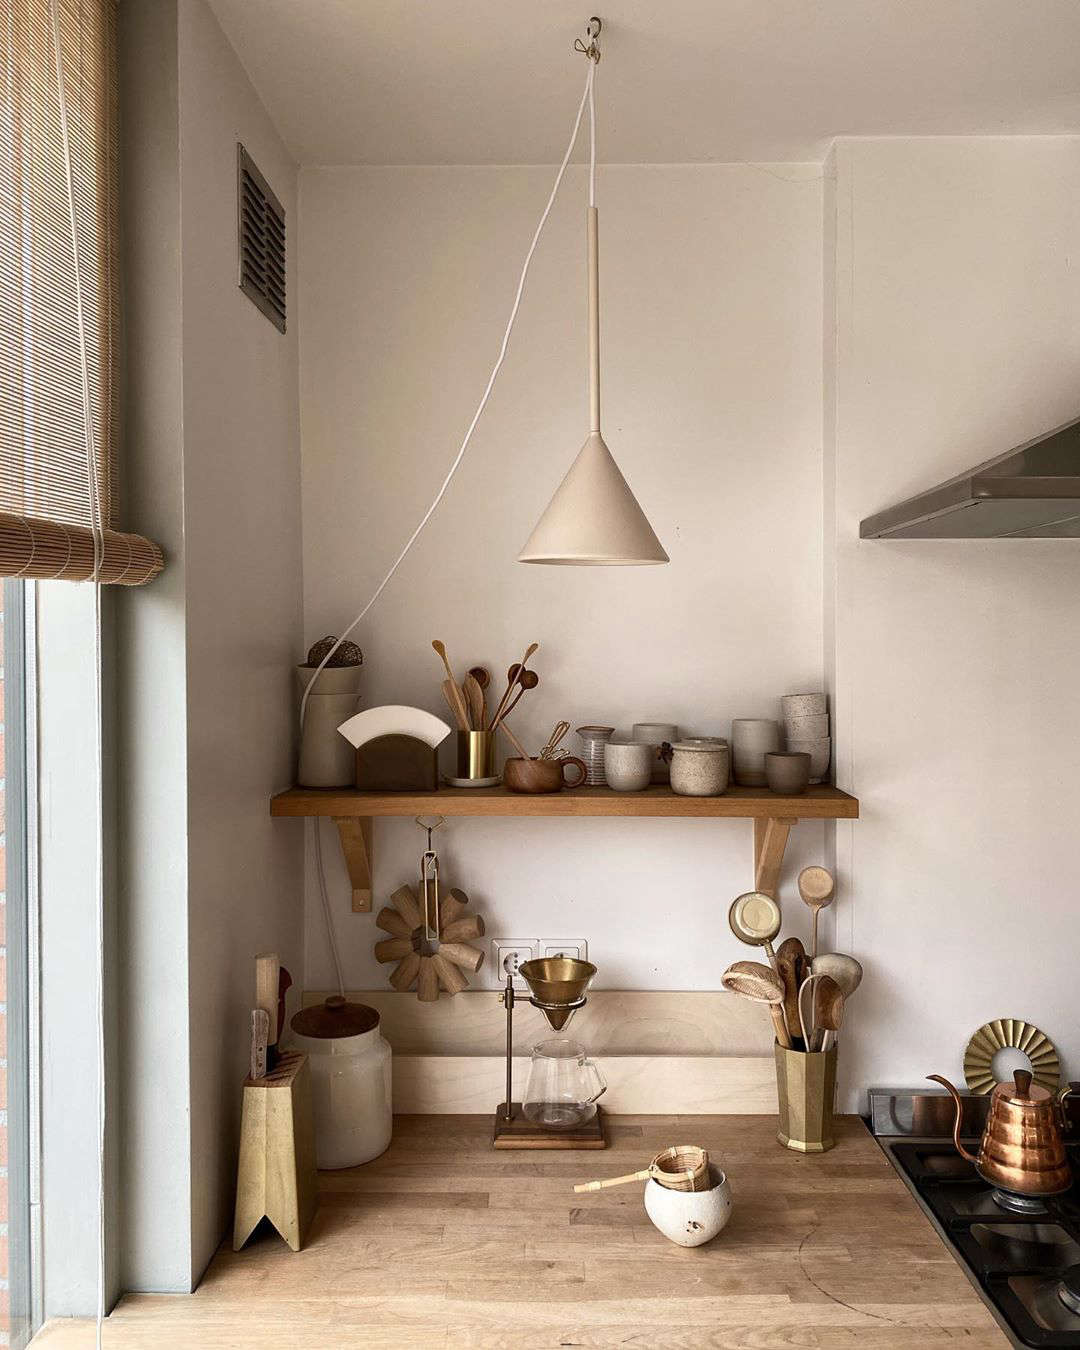 Confirmation of their admiration for Japanese design: an impressive collection of brass Futagami objects. The couple also collect Japanese ceramics. The cone pendant lights are by Schneid Studio.